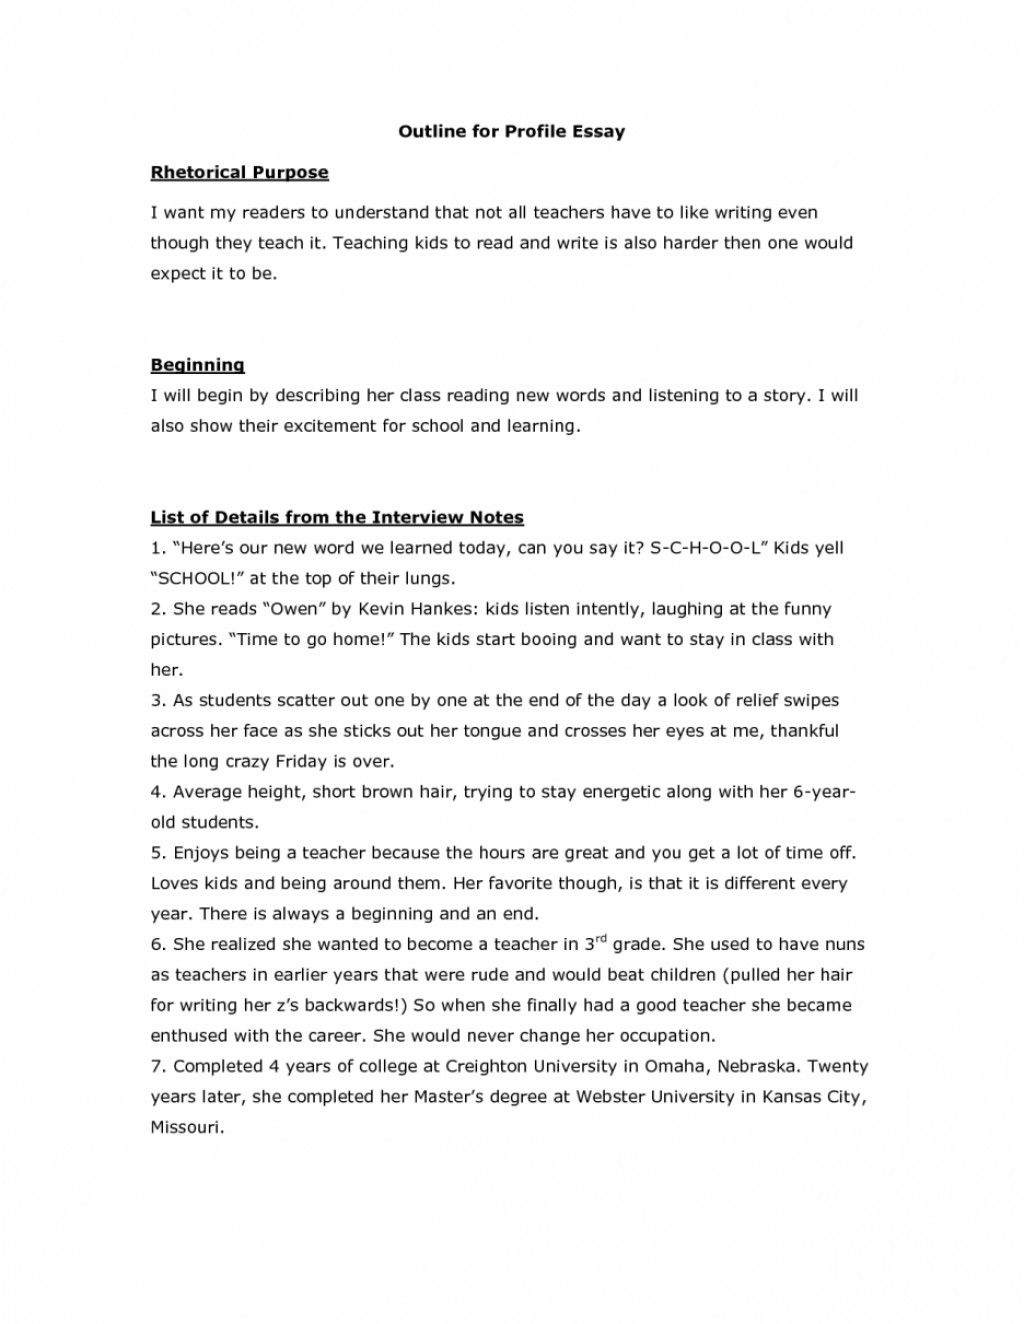 015 Profile Essay Outline Example Personality Topics Examples Of Big Five Samples My Write Wonderful Large